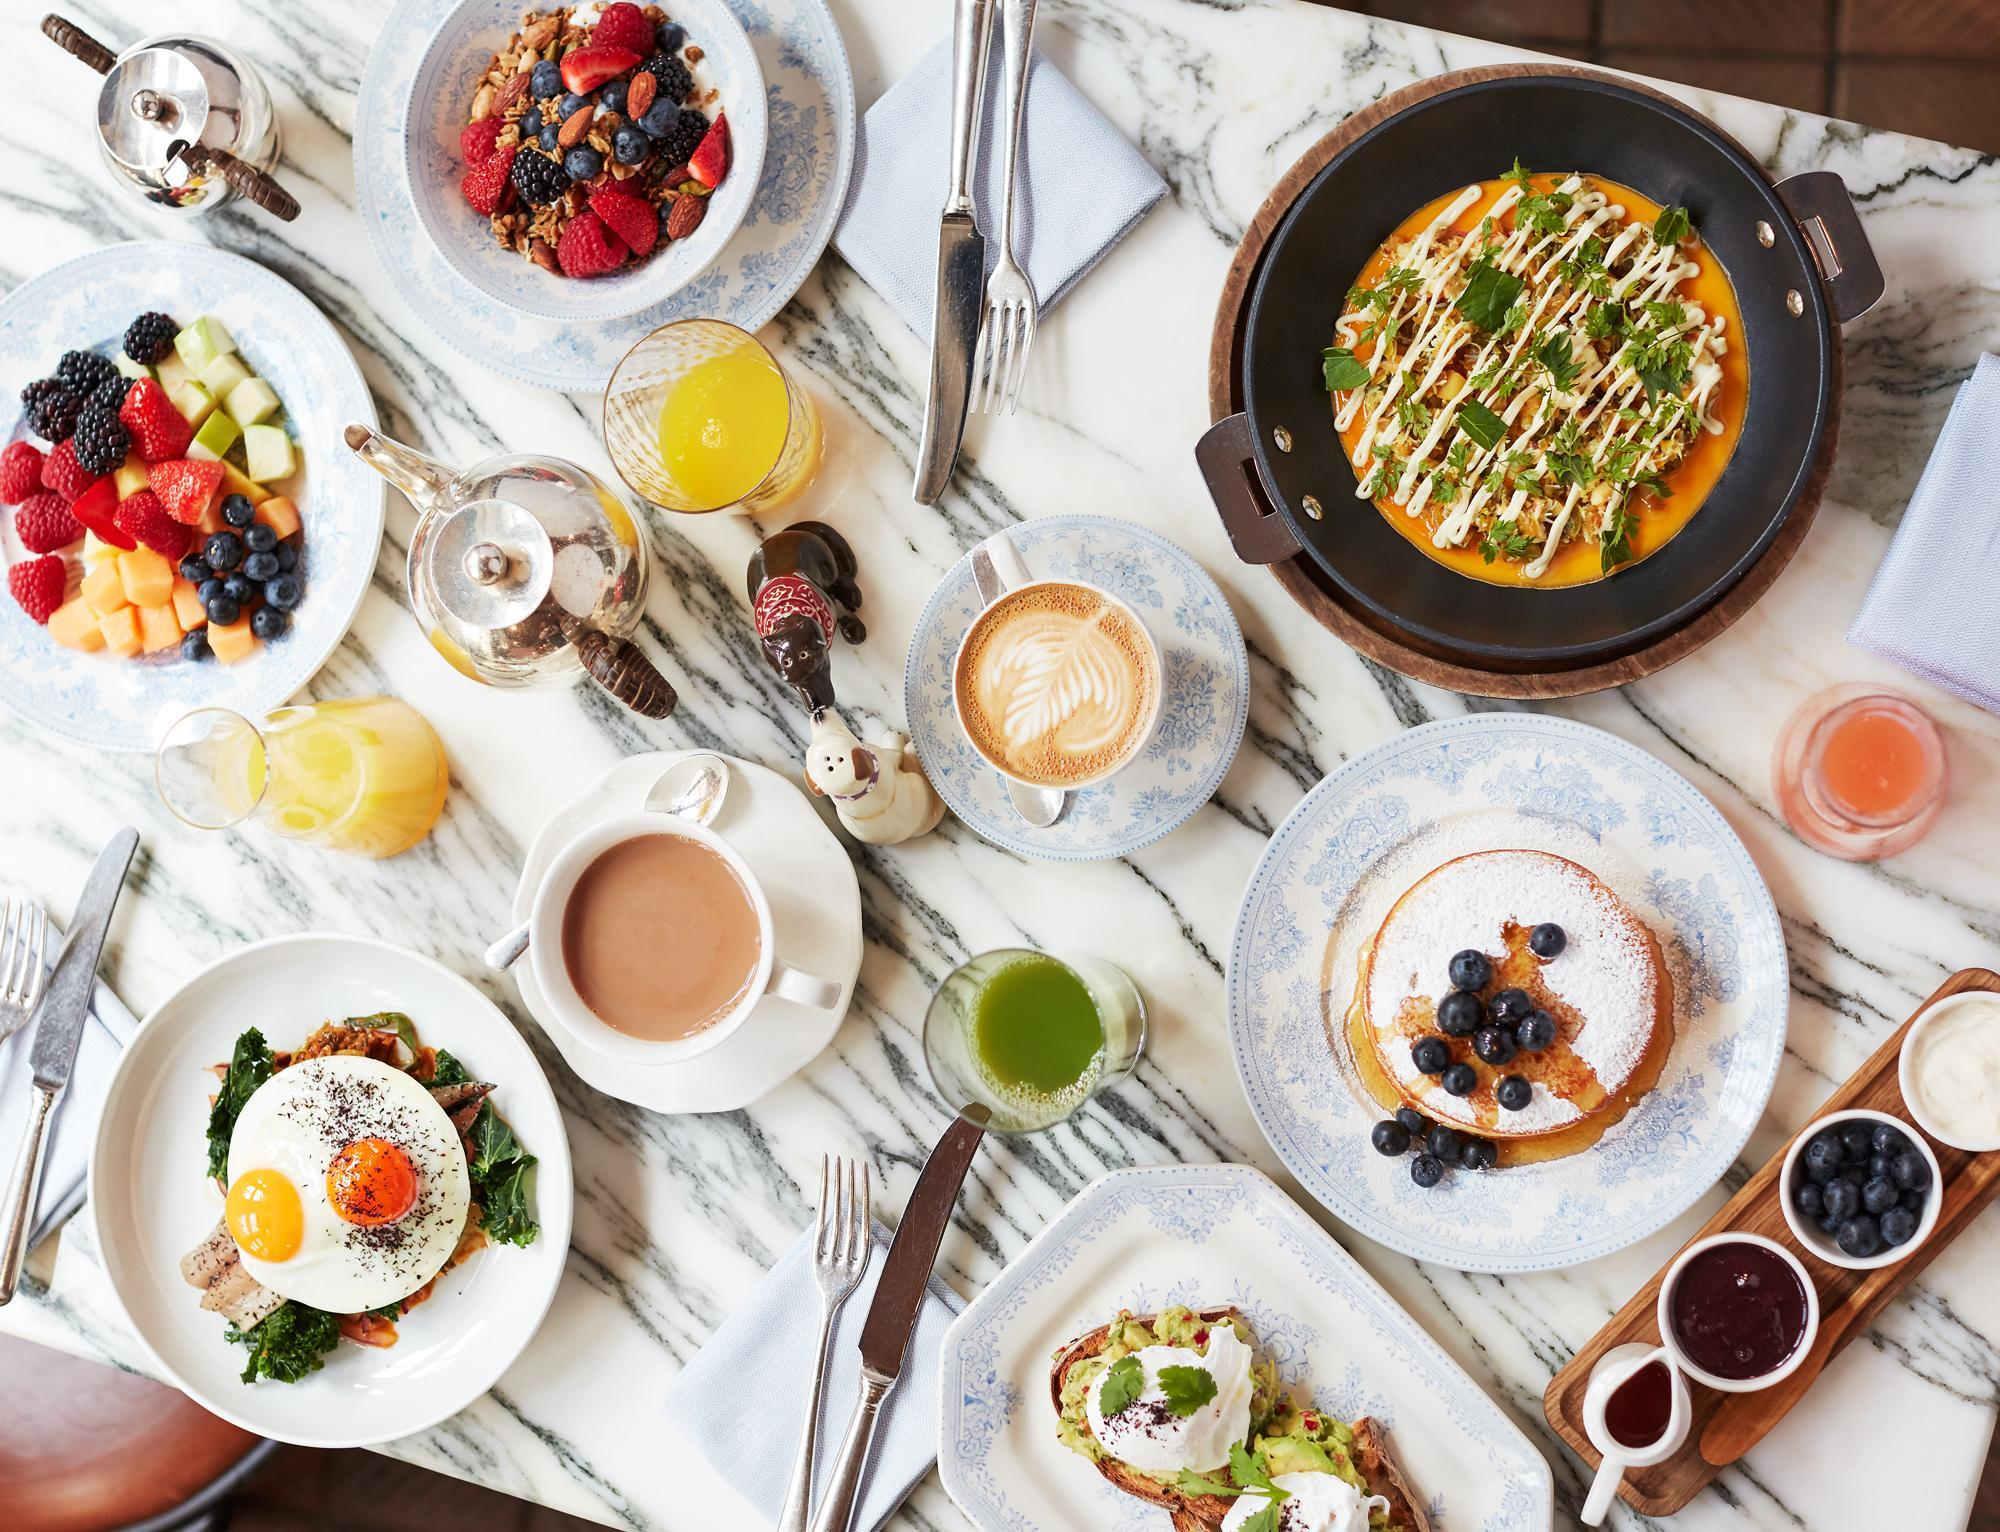 London's 11 best brunches from Chiltern Firehouse to the Wolseley